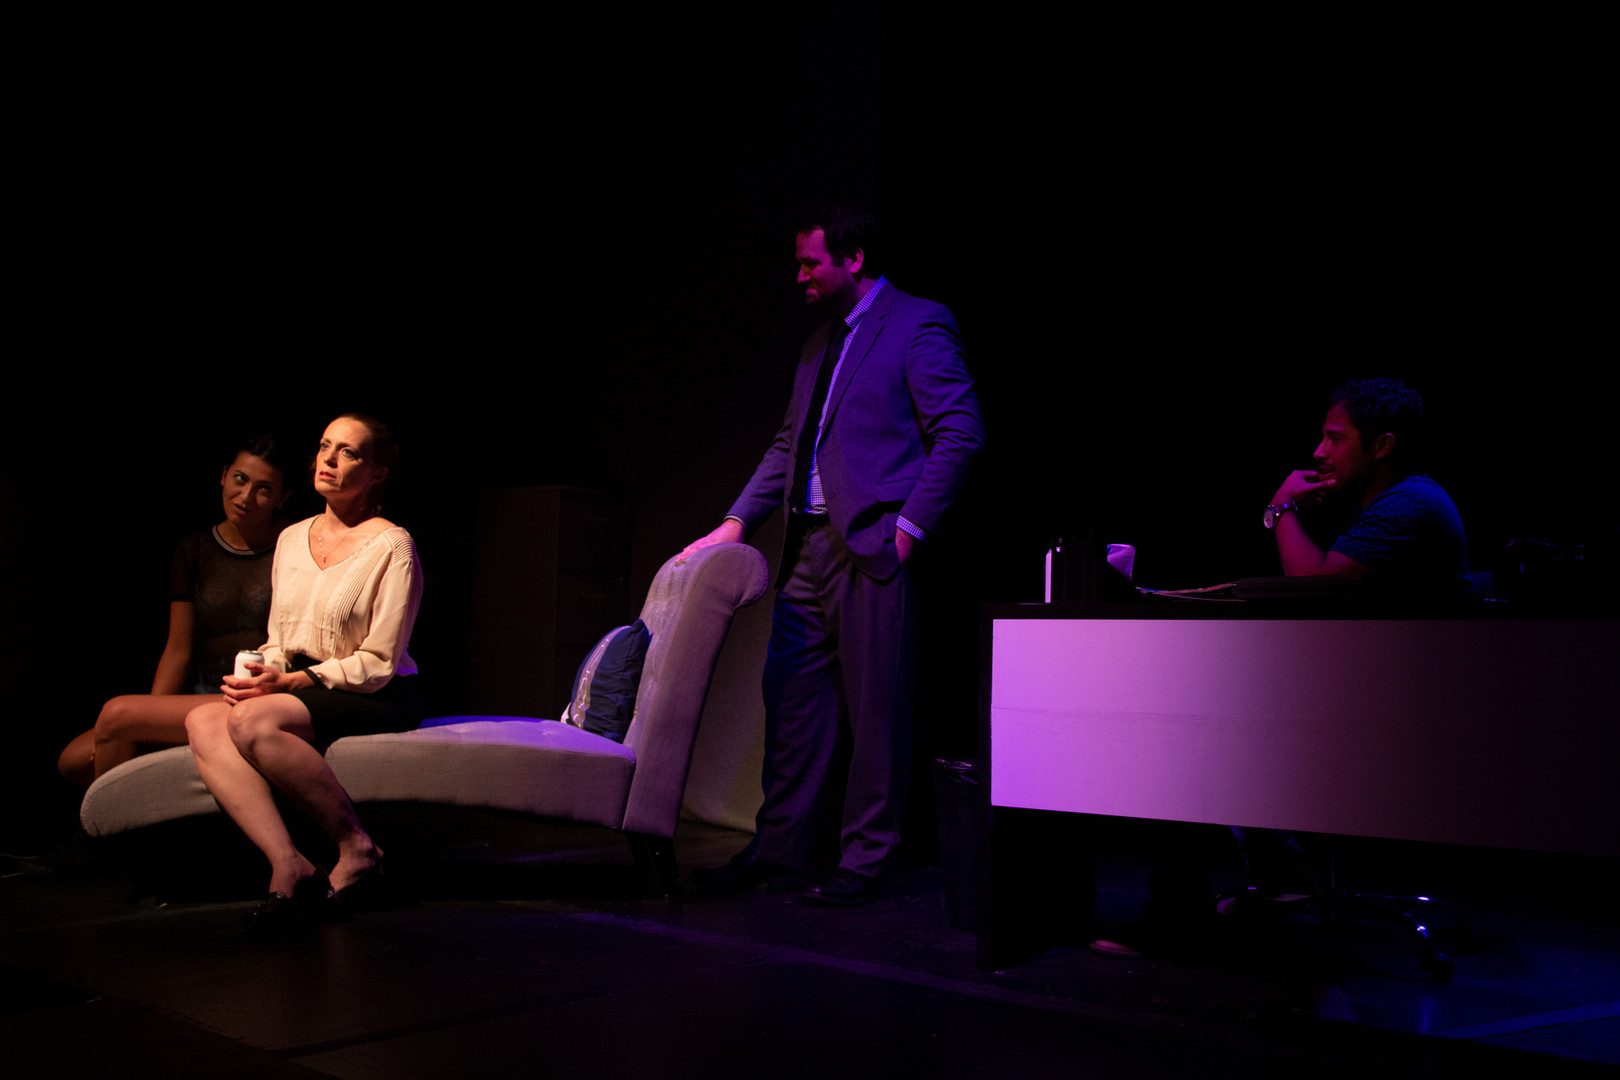 Hank Morris as Elizabeth,  Rene Ramirez III as James, Becky Granger as Alex, and Tyler Weaver as William in JERK, 2017.